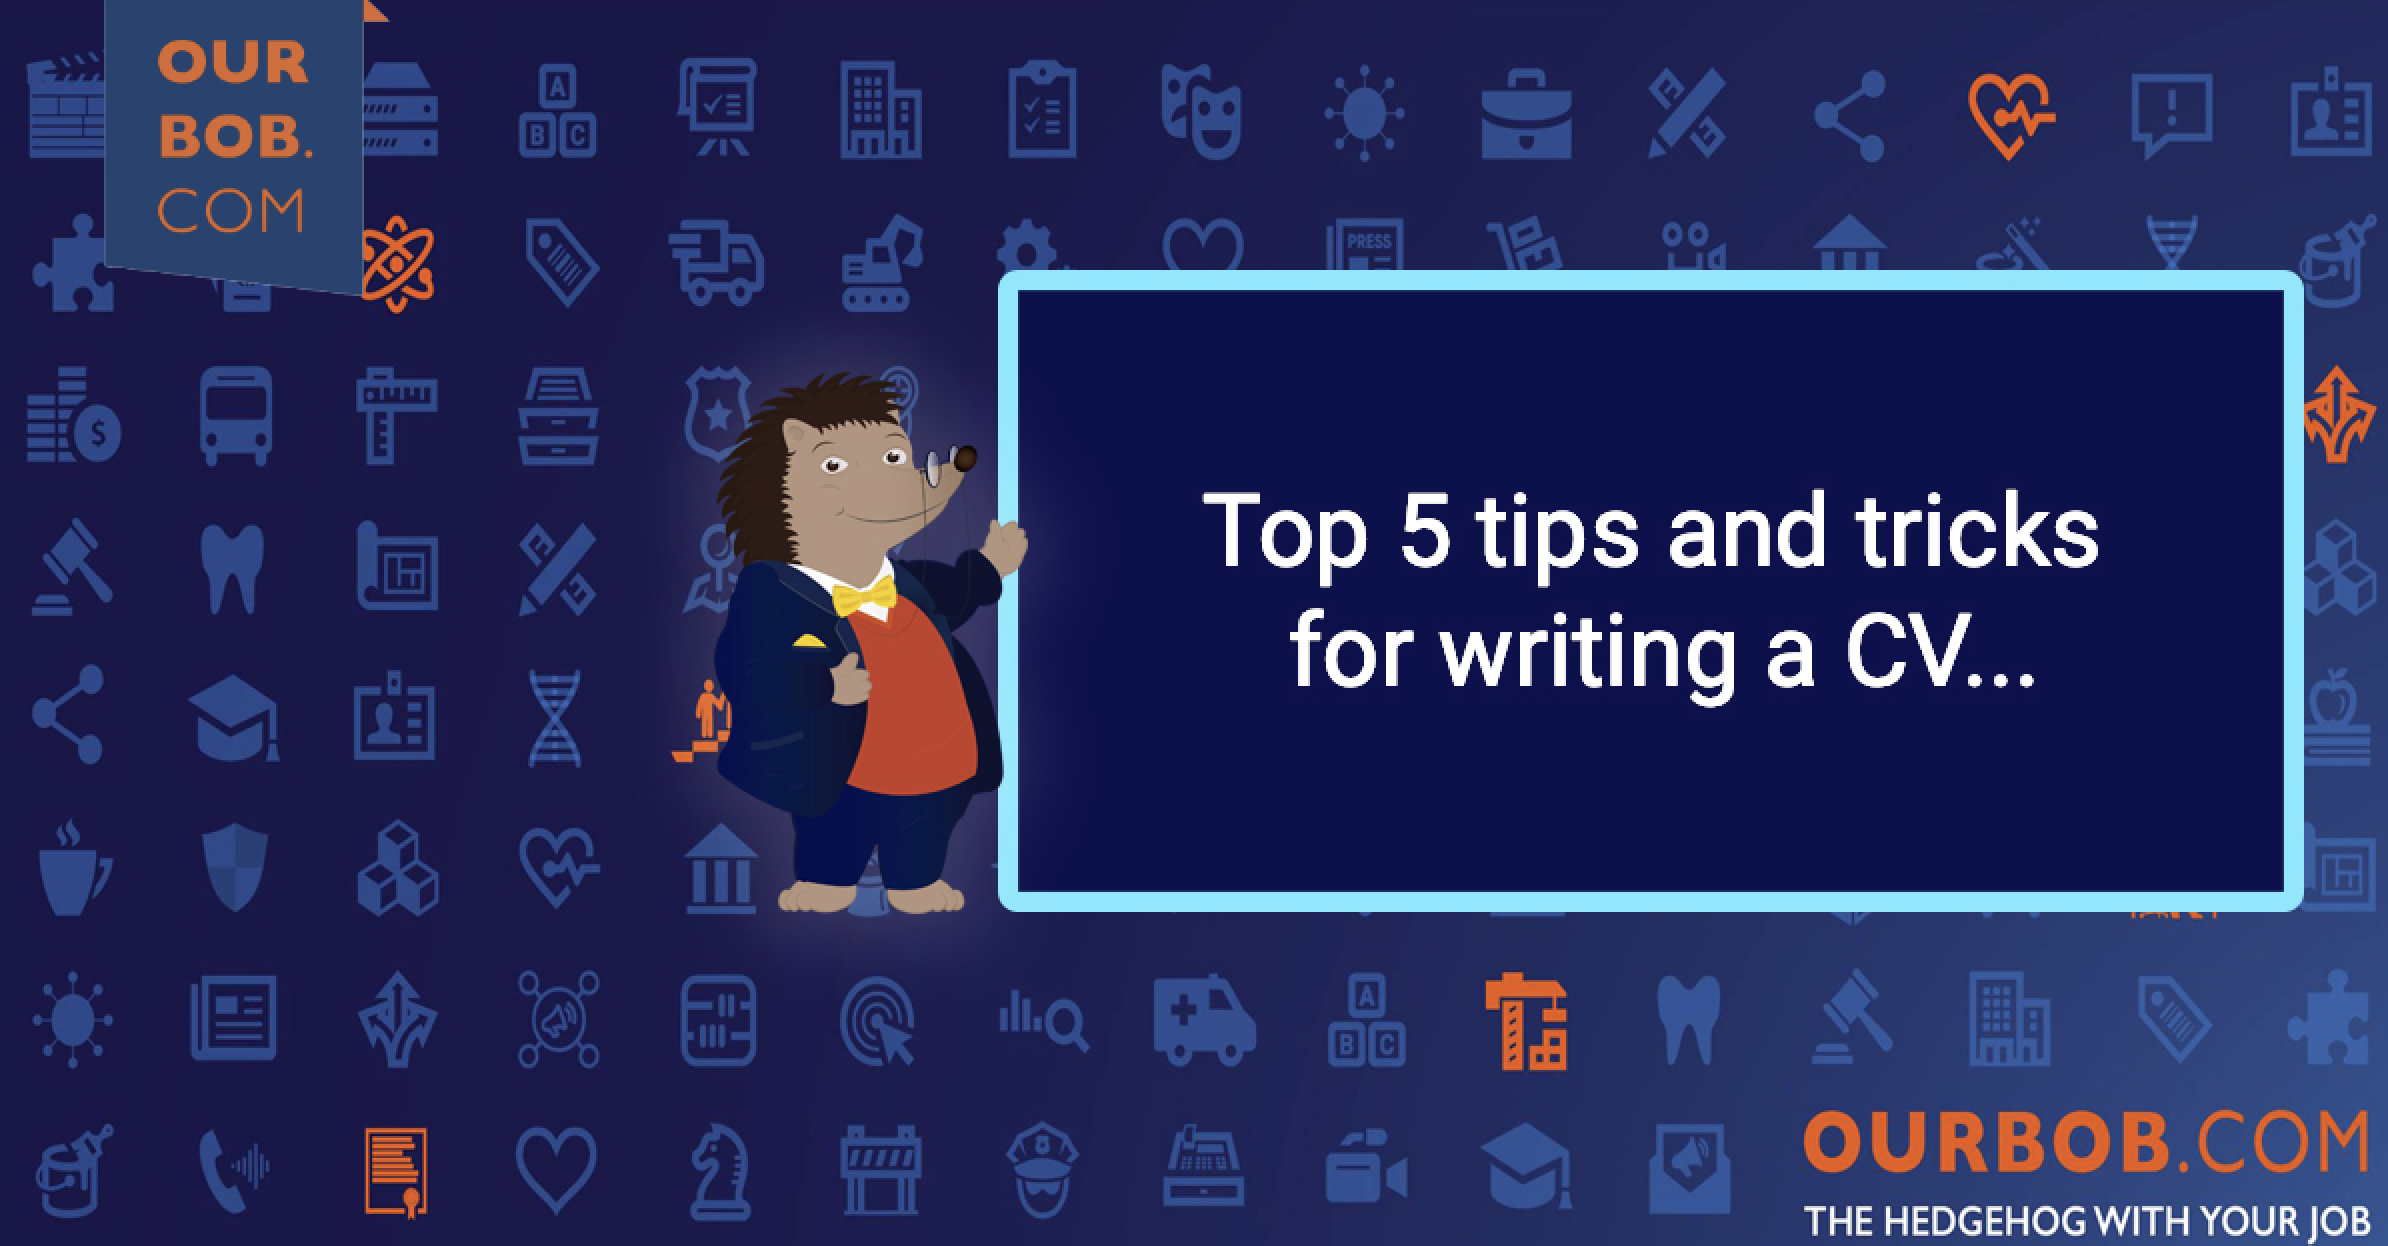 Top 5 tips and tricks for writing a CV